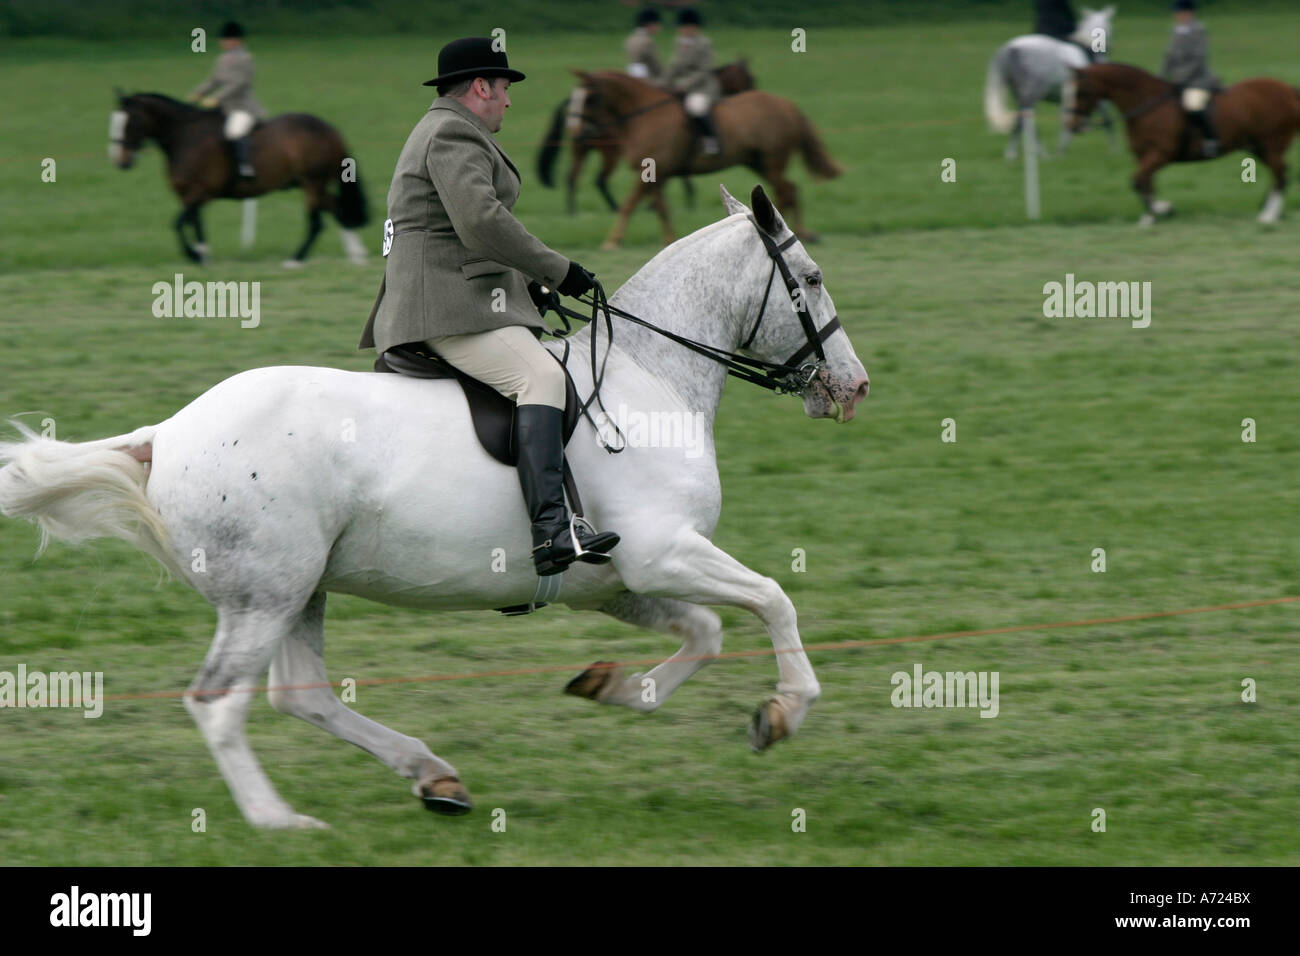 A middle aged rider on his white horse competes in the South Oxfordshire Riding Club's Open Show - Stock Image